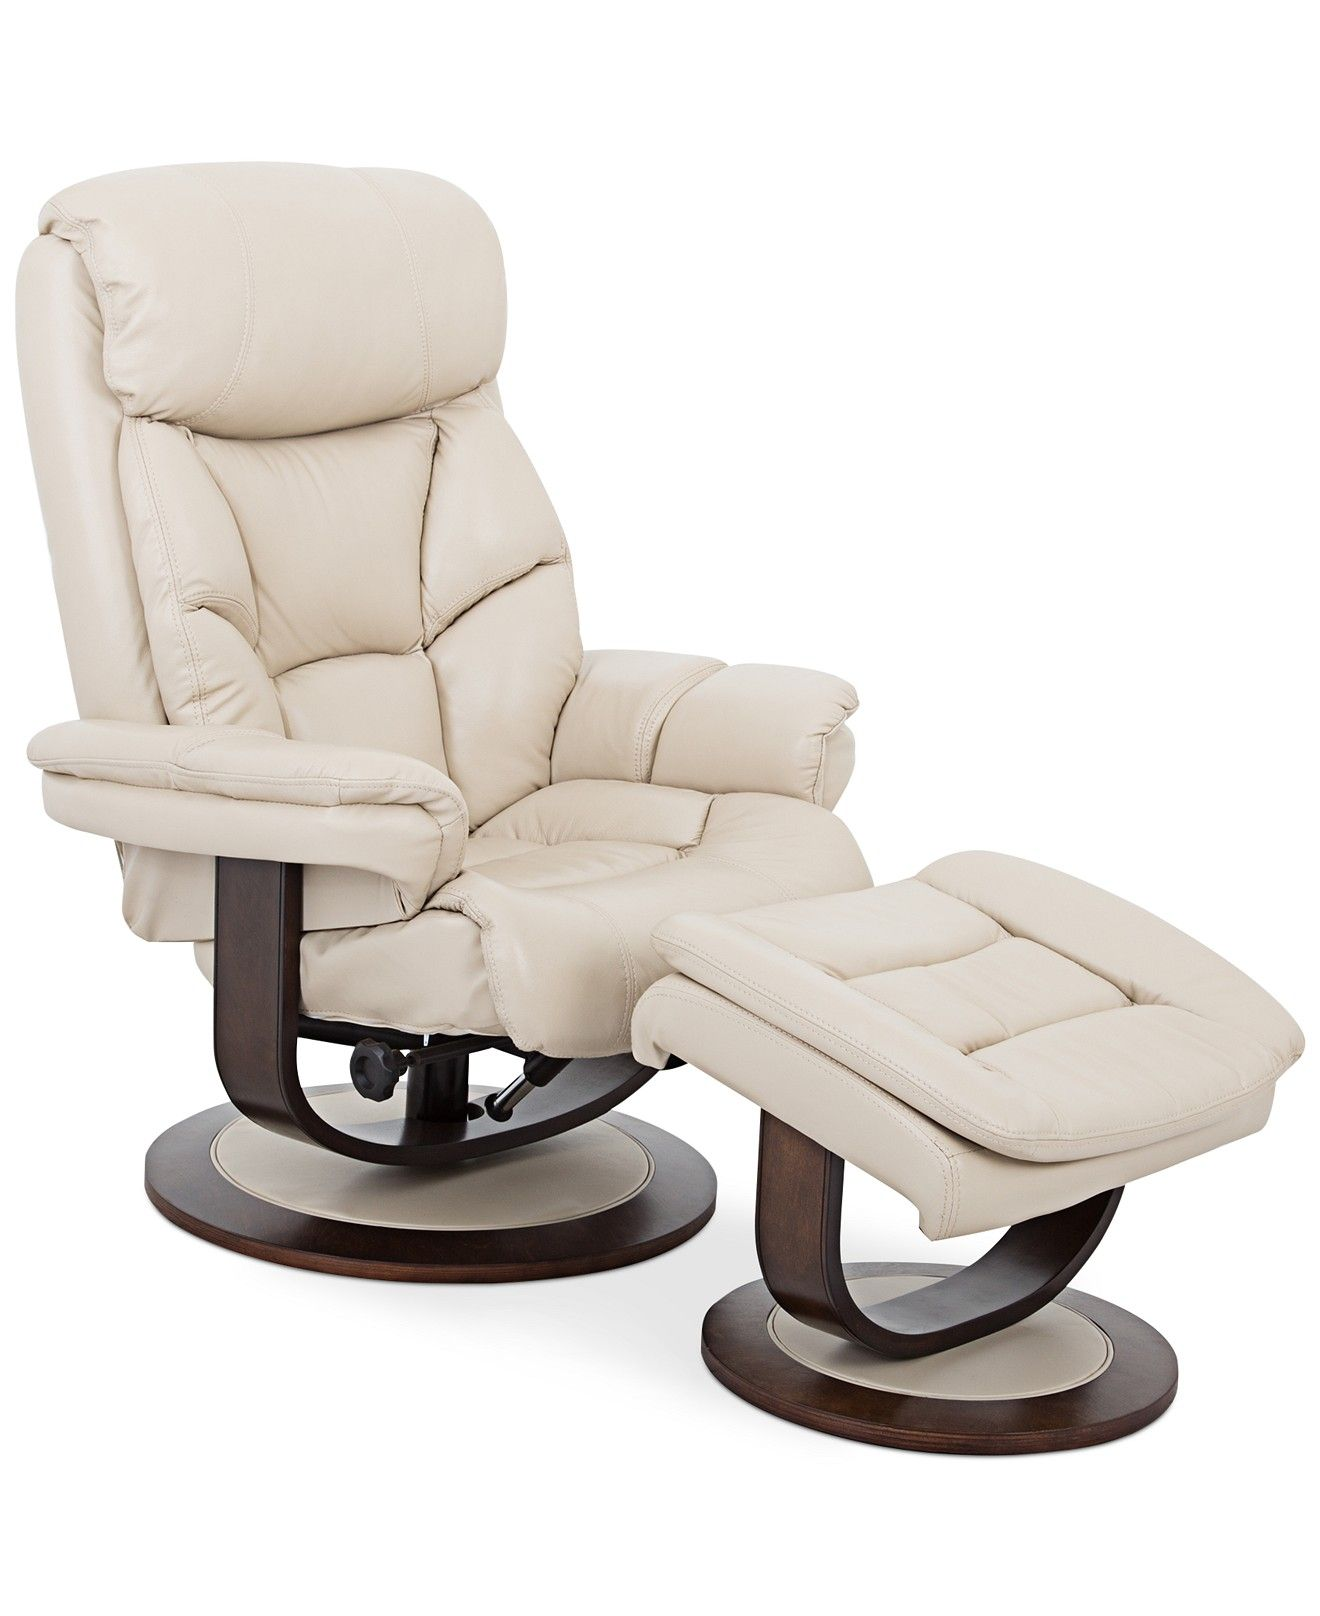 Leather Recliner Chair With Ottoman Aby Leather Recliner Chair Ottoman Furniture Macy S